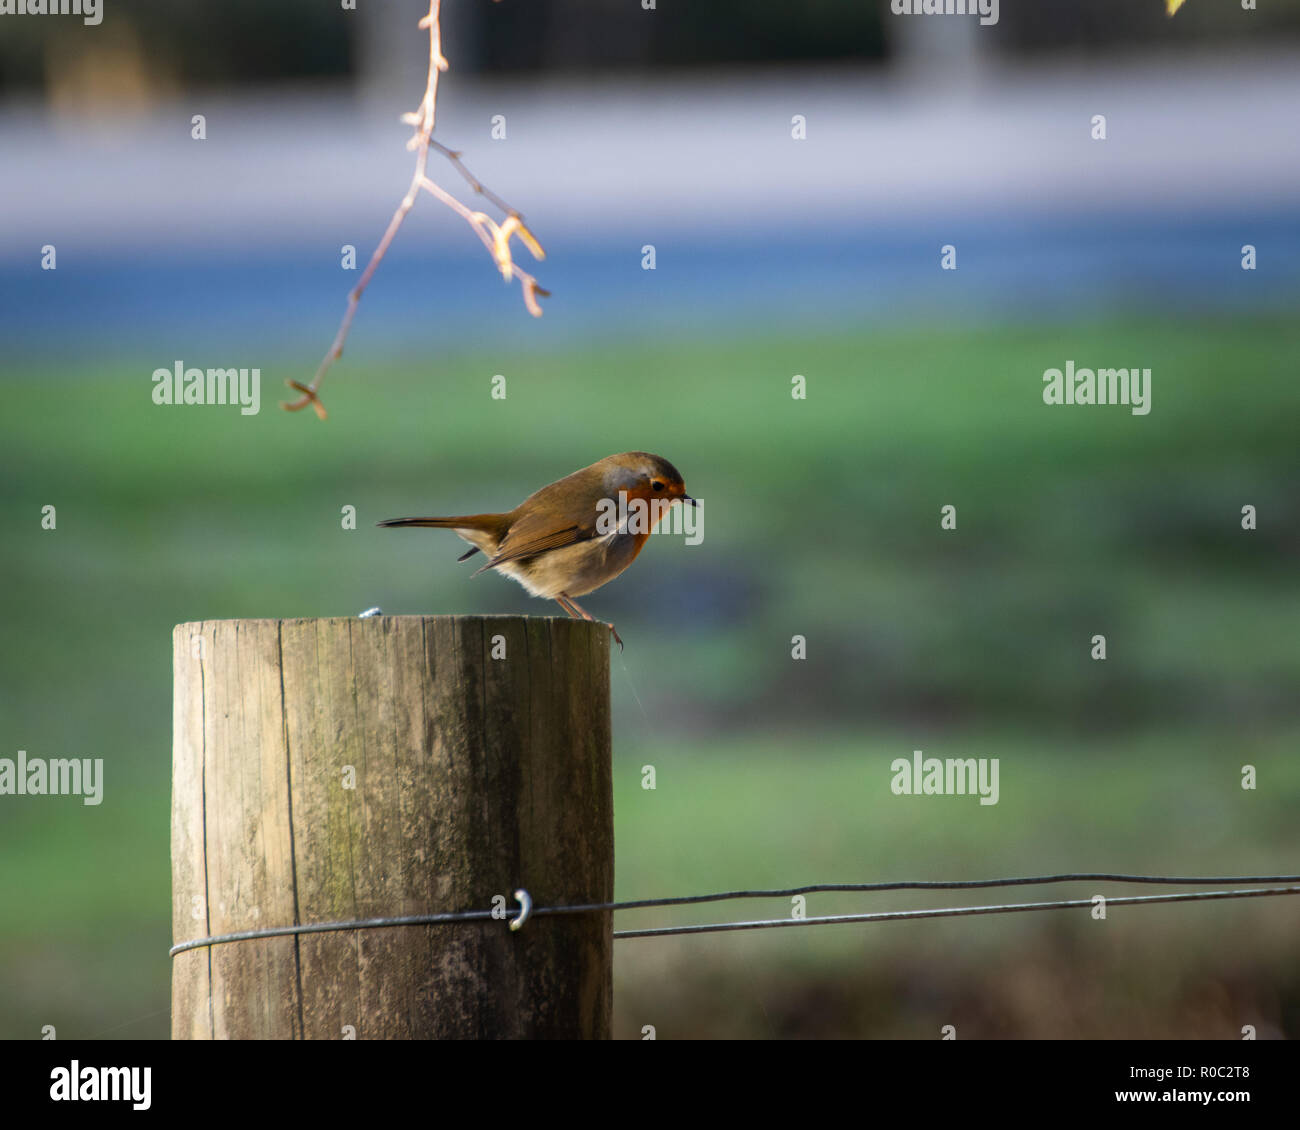 Small robin on fence post, Lyndhurst, New forest, hampshire, UK - Stock Image